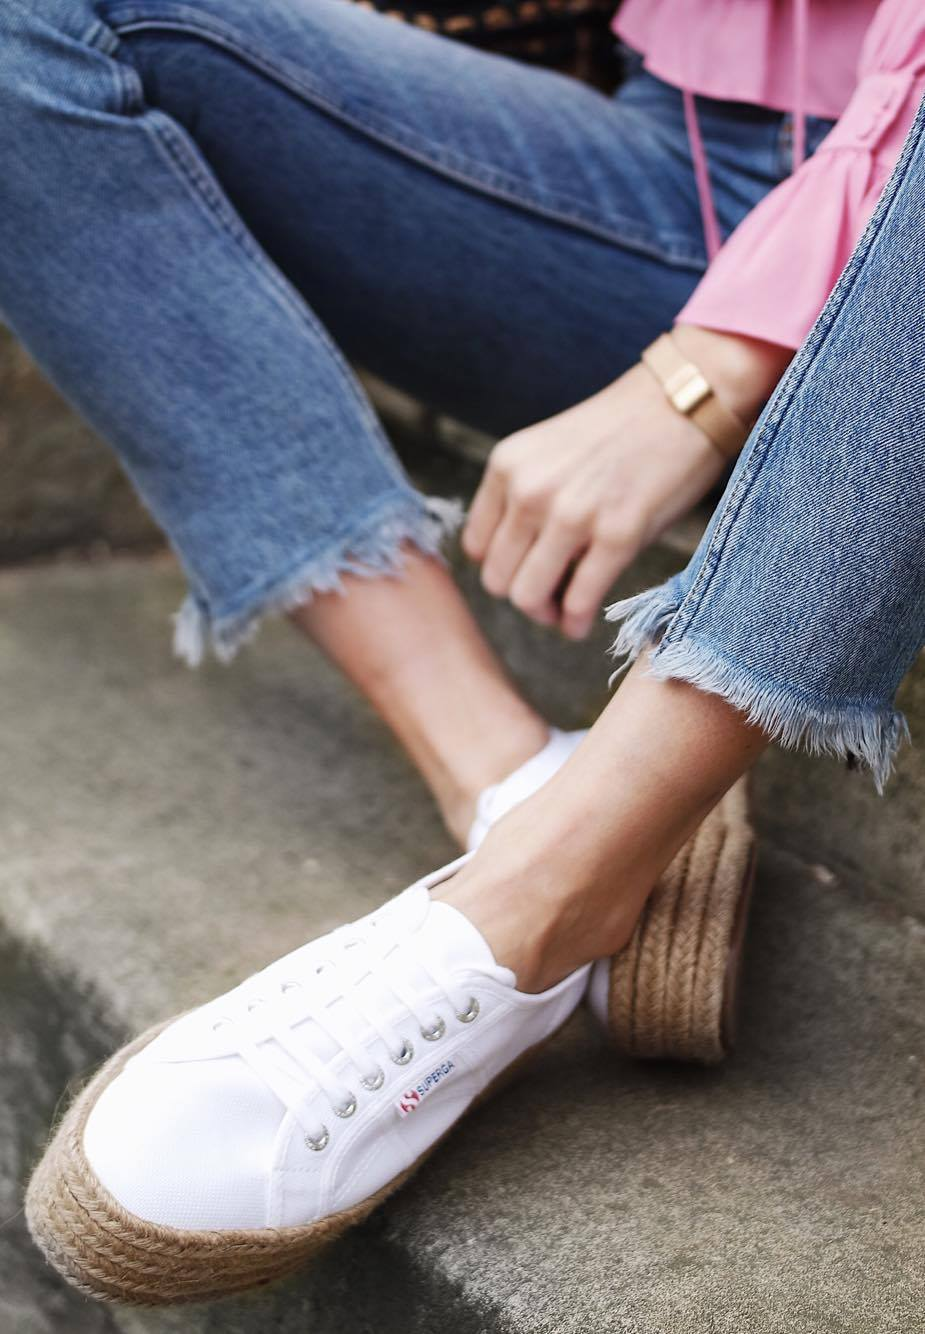 Coachella Vibes - Superga Espadrille Shoes